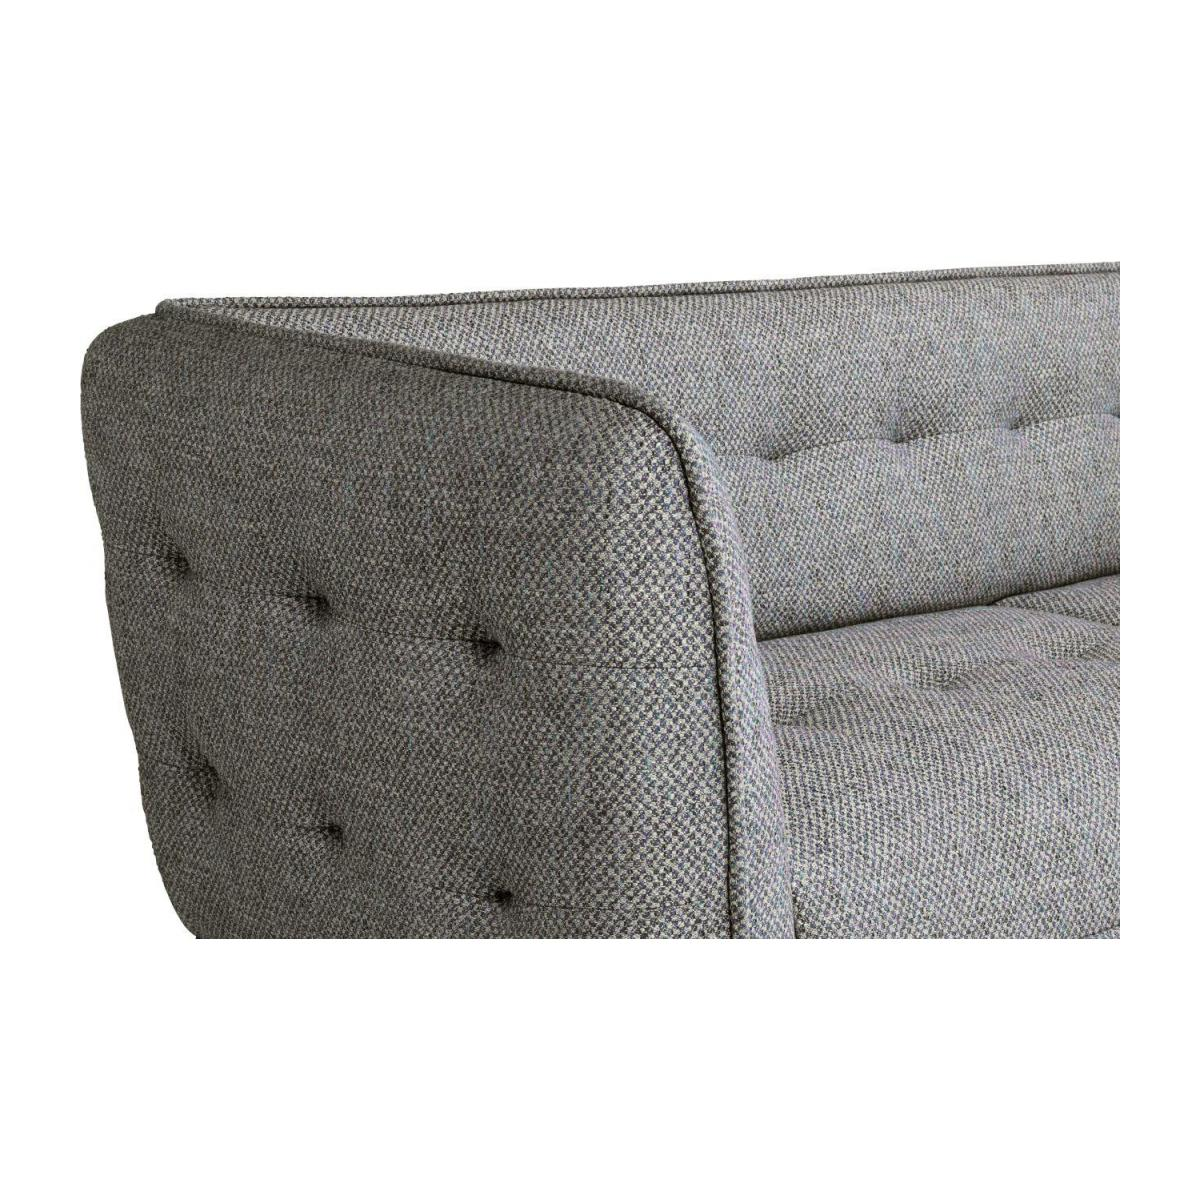 3 seater sofa in Bellagio fabric, night black and dark legs n°6